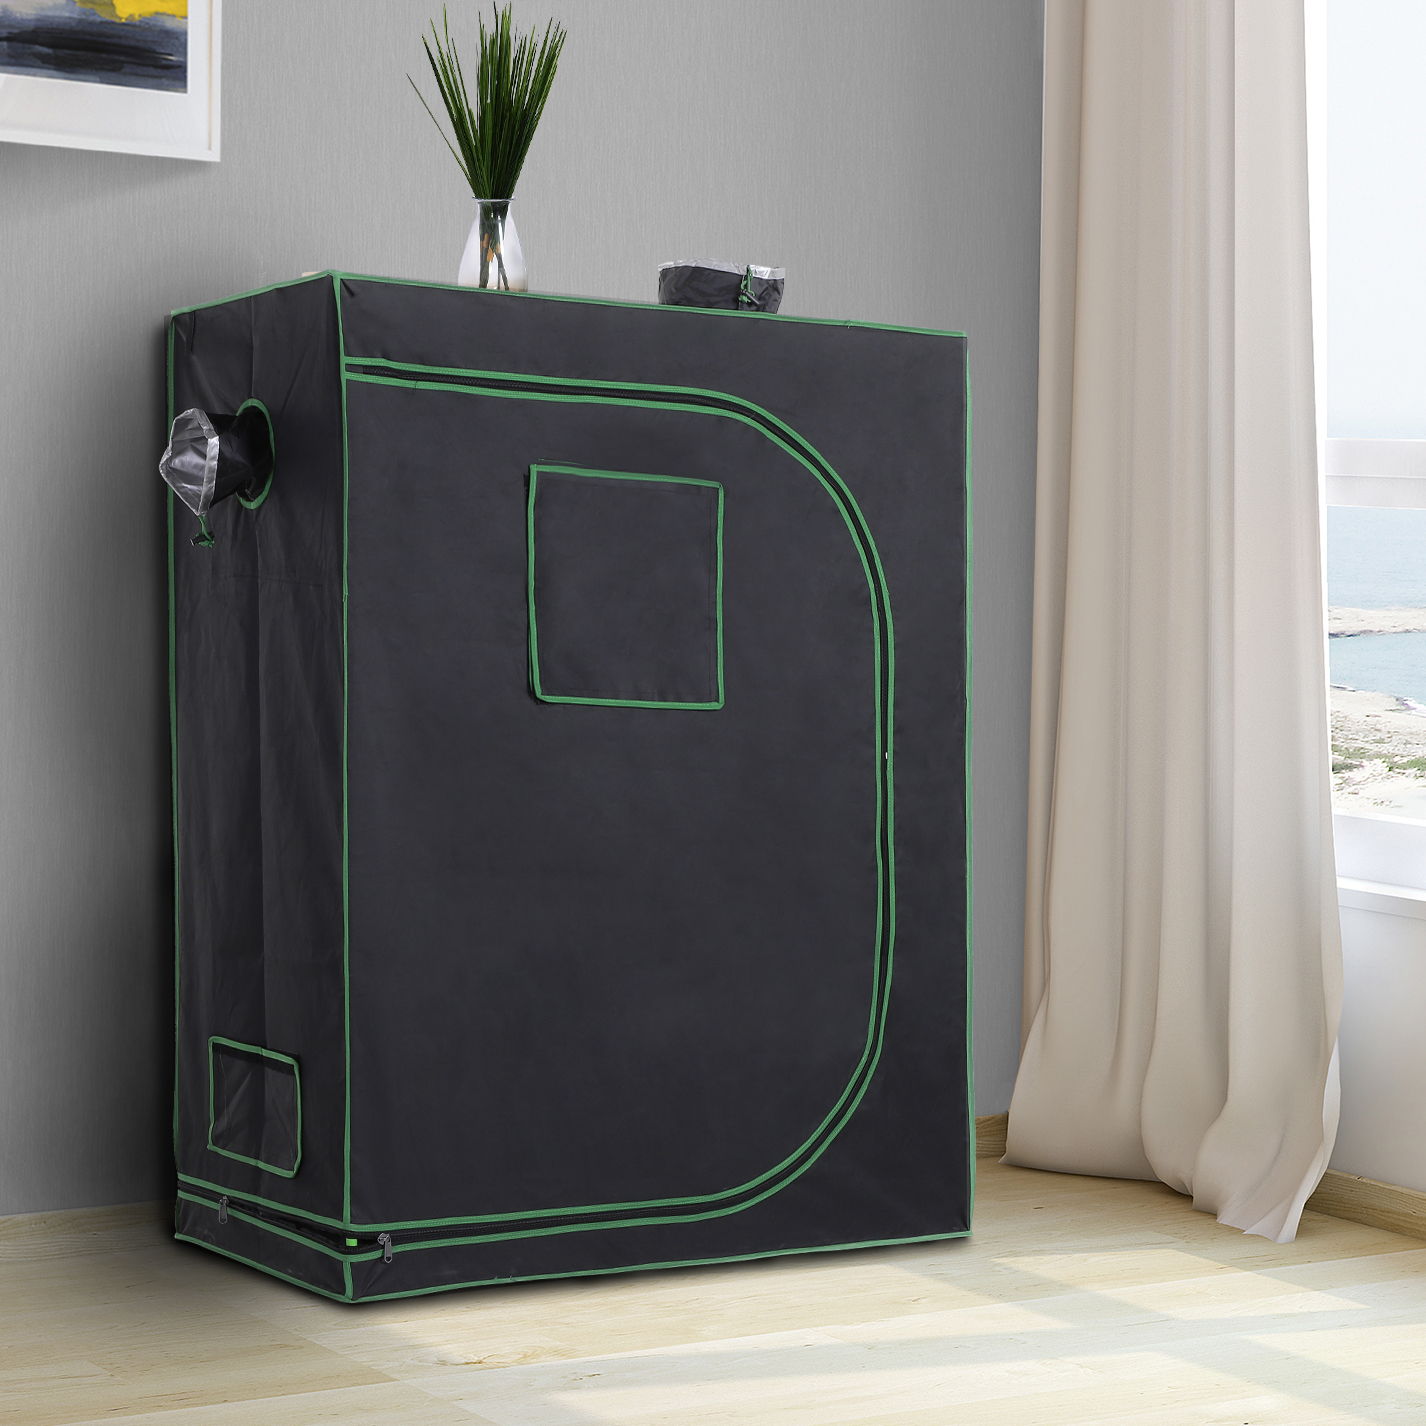 Hydroponic-Plant-Grow-Tent-Indoor-Obeservation-Window-Floor-Tray-Steel-Pole-600D thumbnail 9